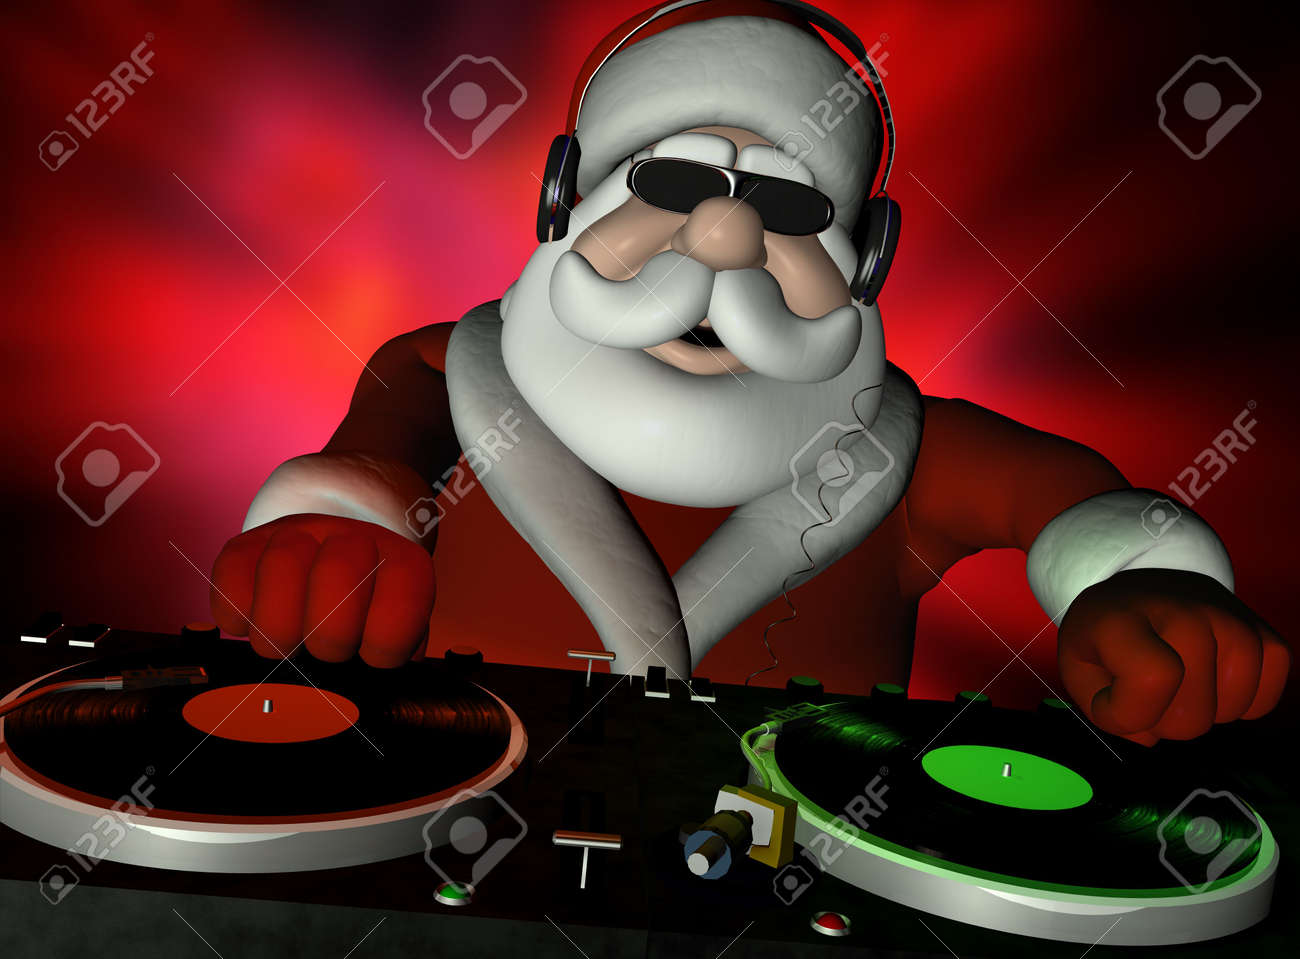 Big DJ SC is in Da House and mixing up some Christmas cheer.  Turntables with vinyl albums. Stock Photo - 5385314